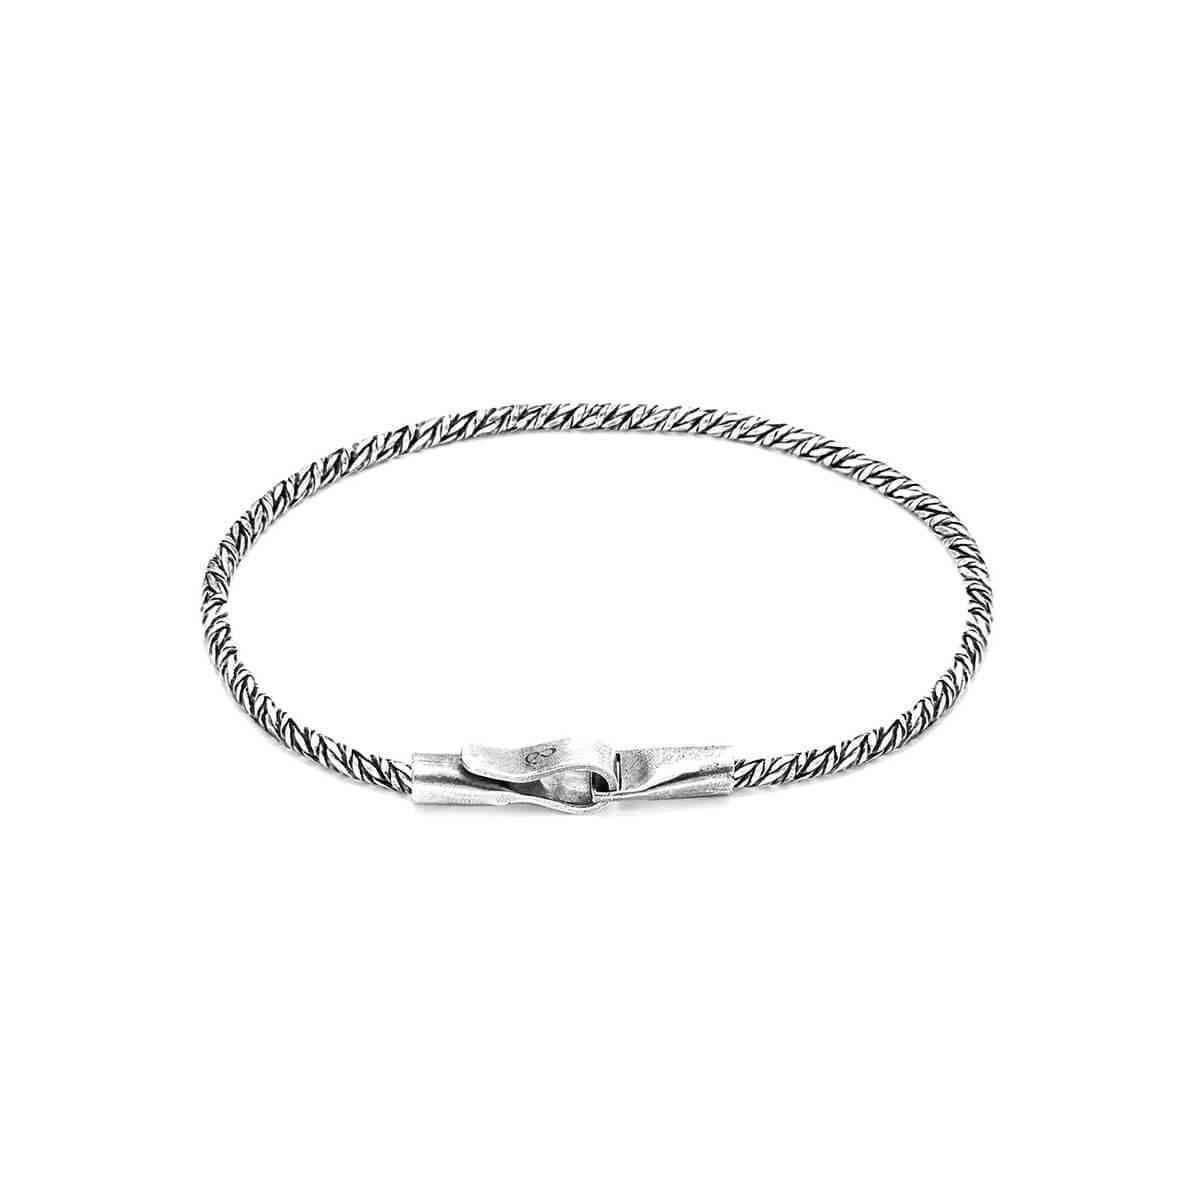 Anchor & Crew Halyard Single Sail Silver Chain Bracelet RdC1gw